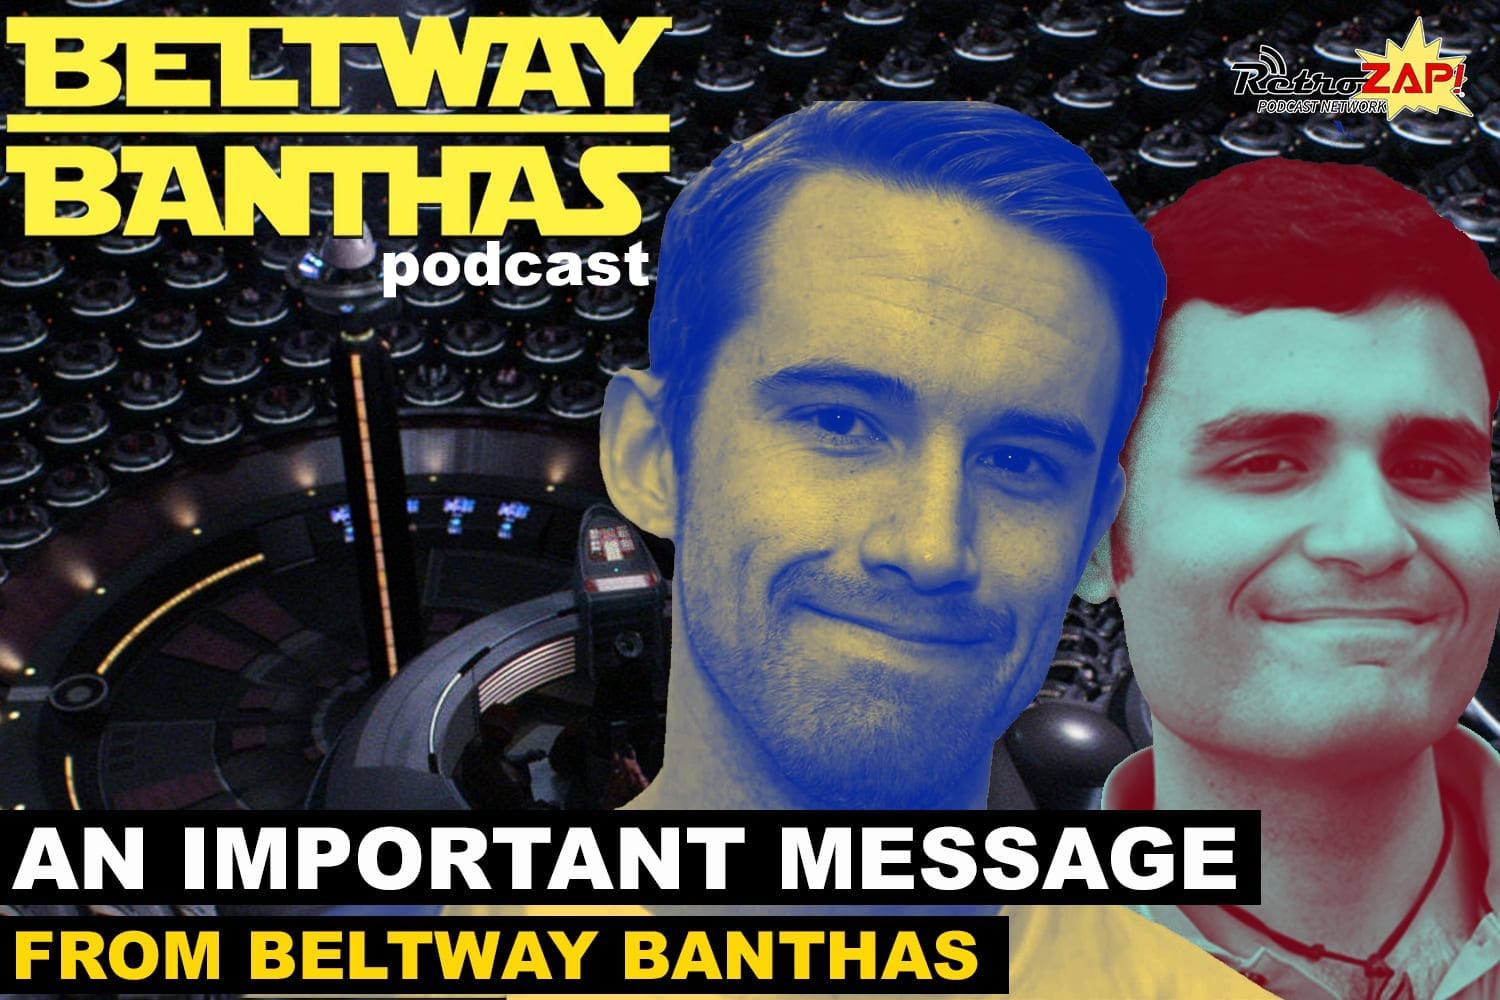 An Important Message From Beltway Banthas